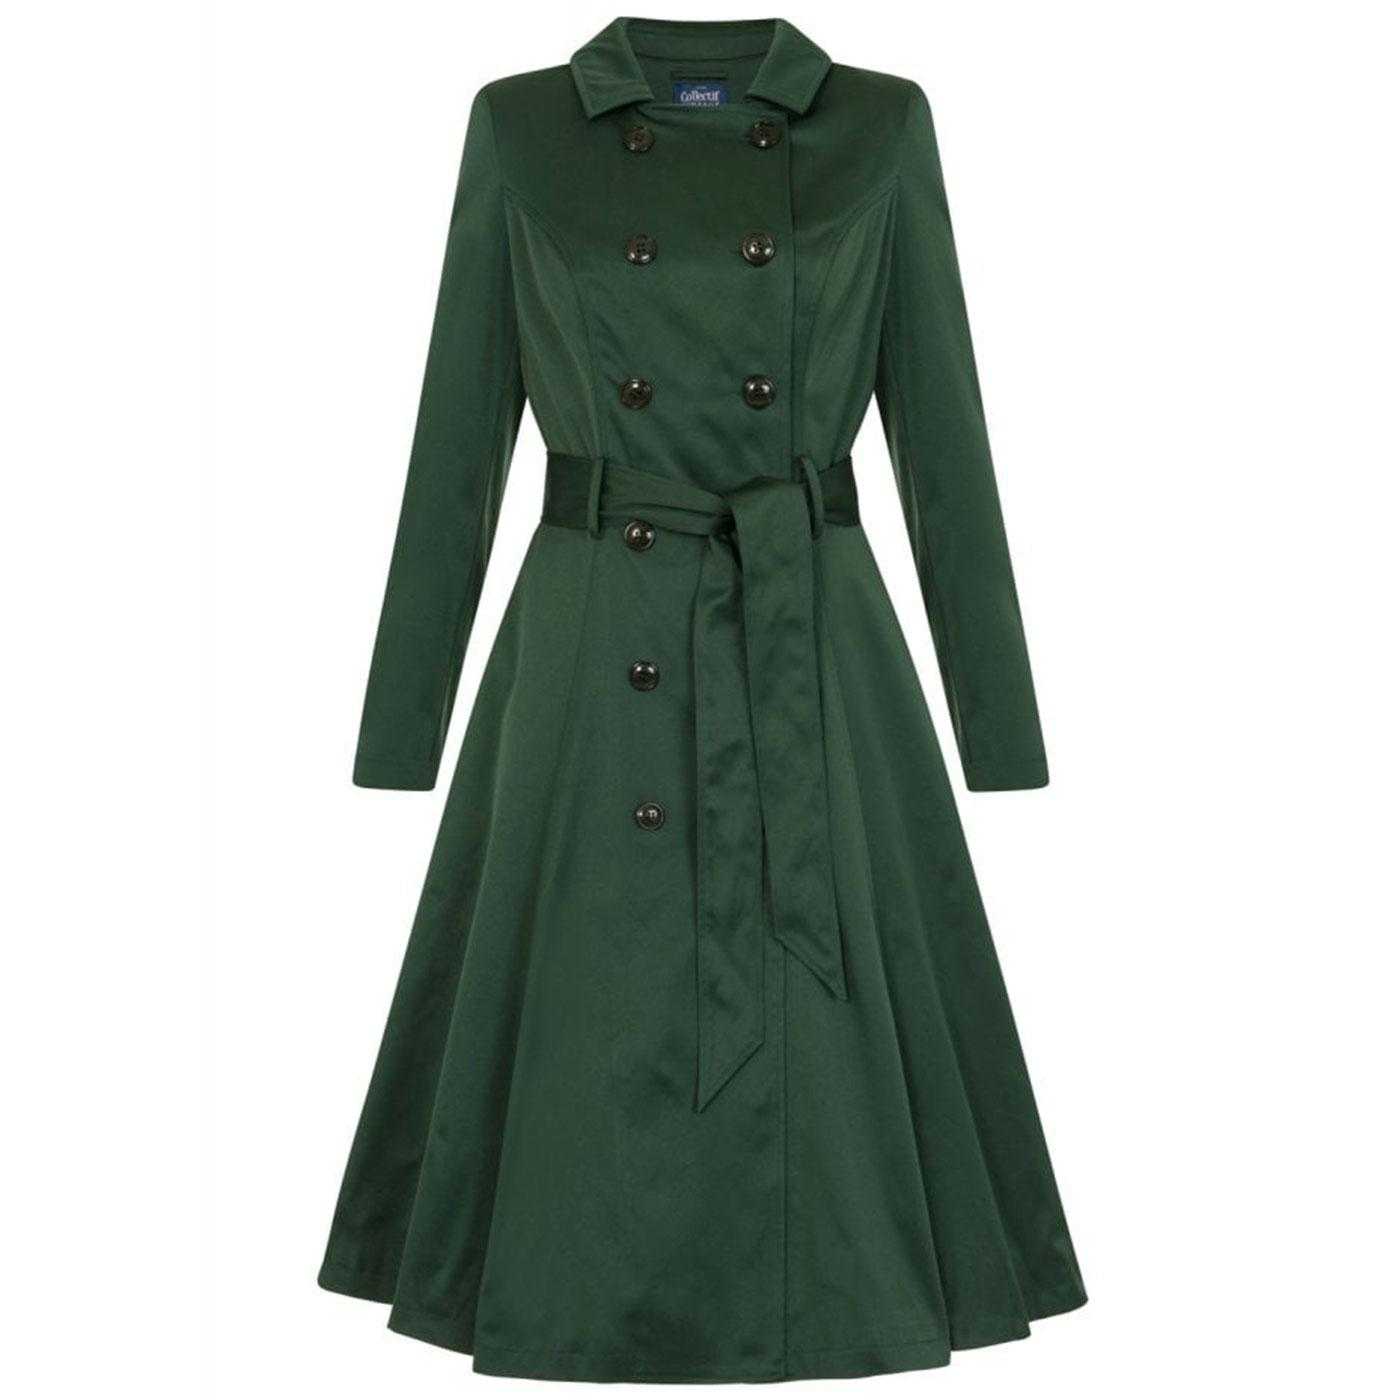 Korrina COLLECTIF Vintage Swing Trench Coat Green